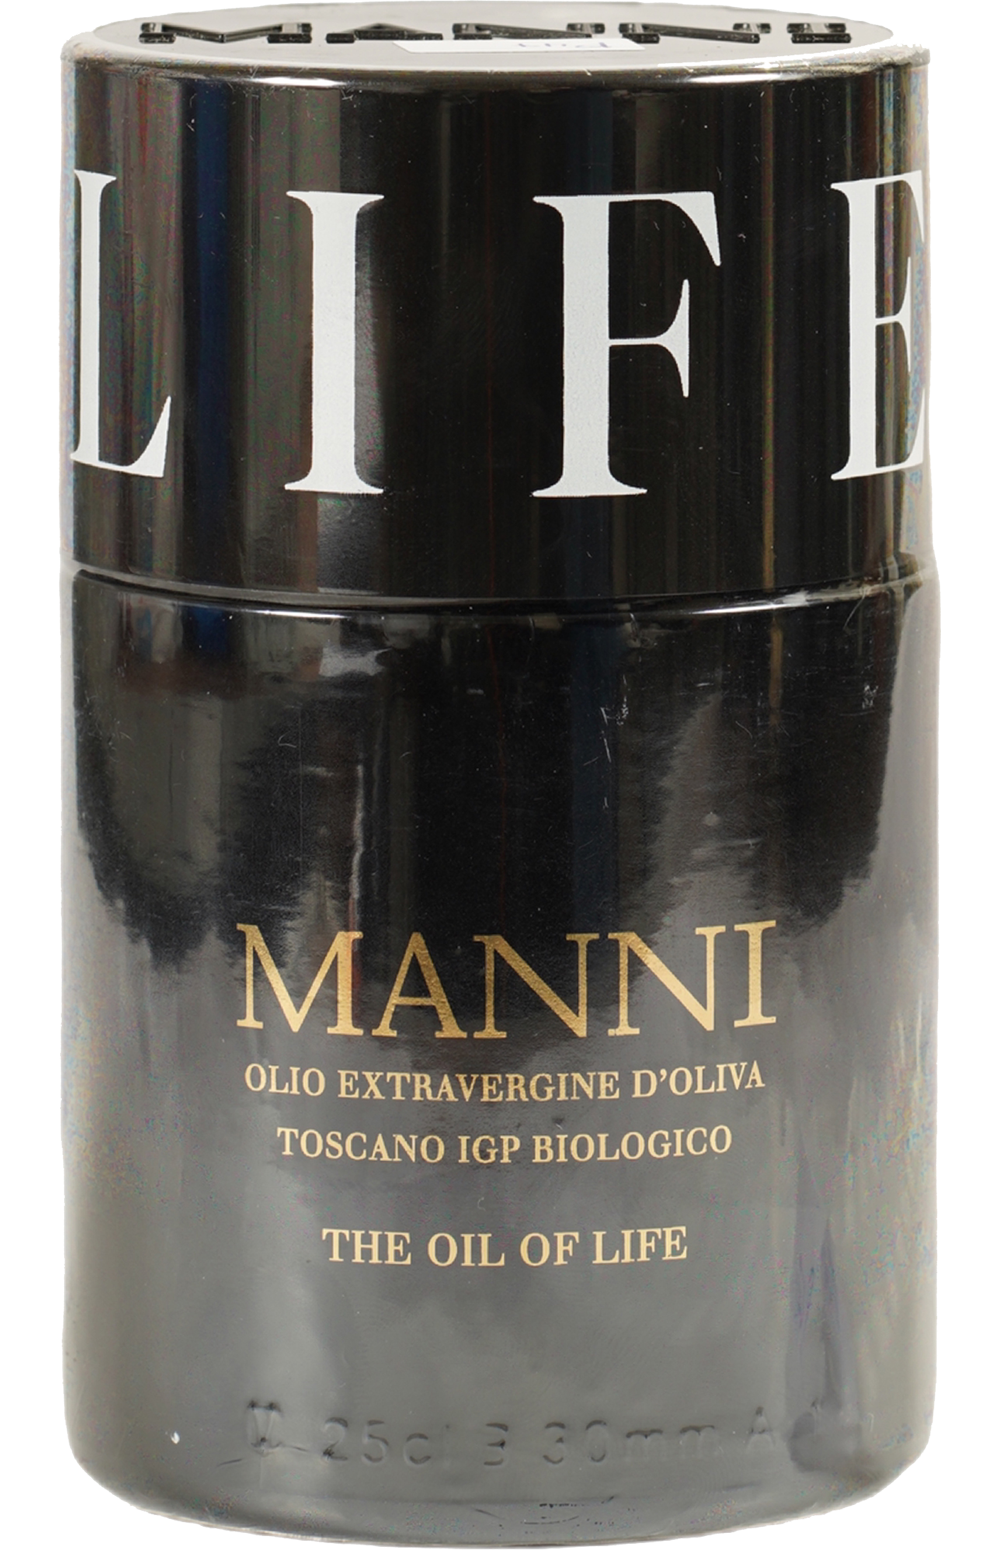 Manni- The oil of life